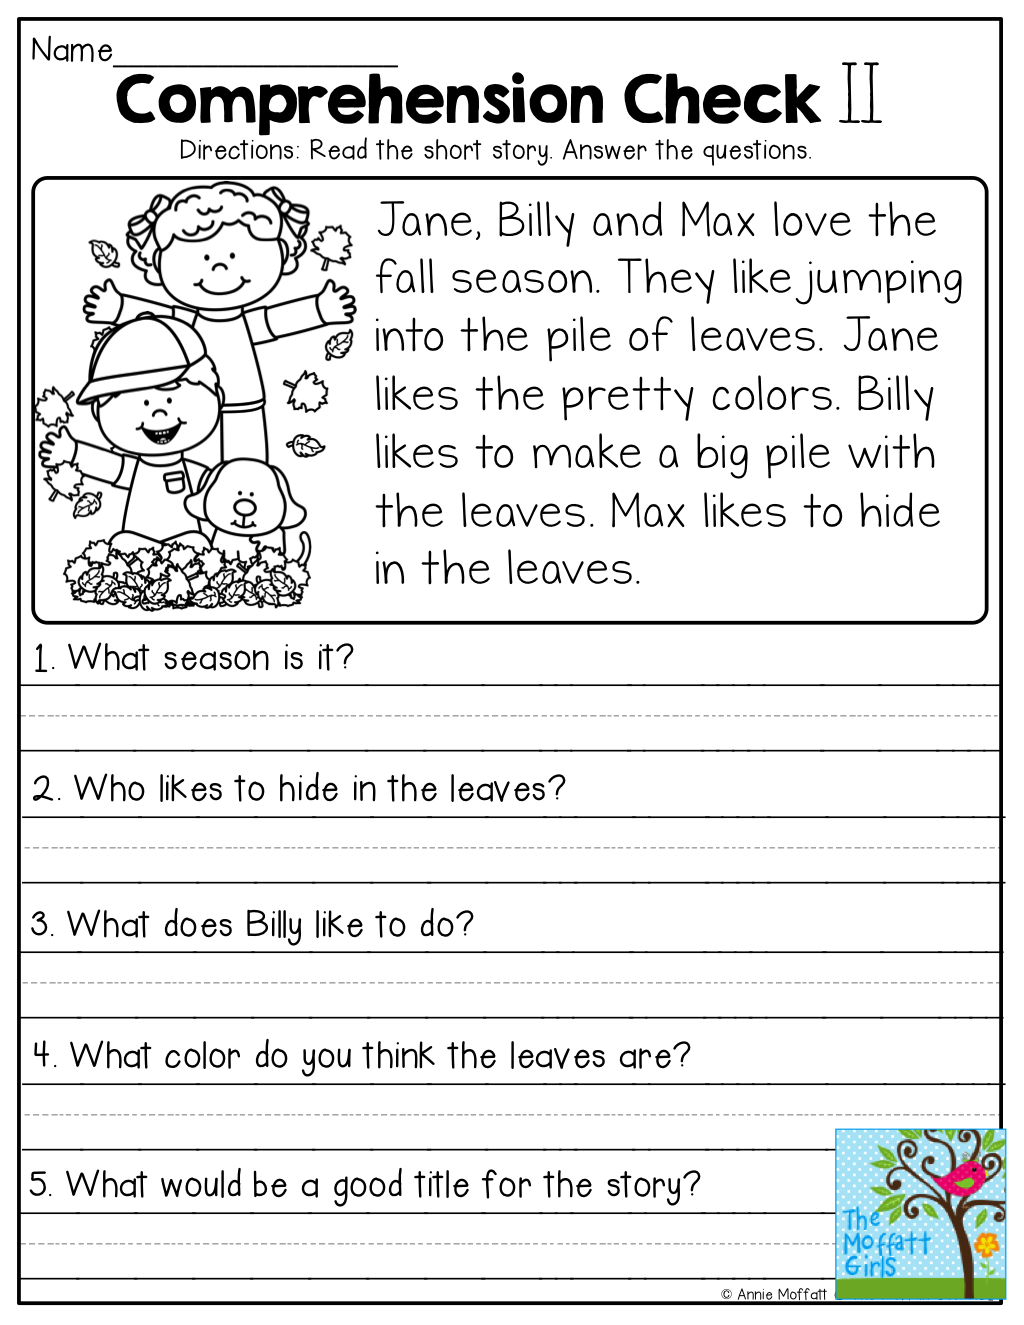 Comprehension Checks And So Many More Useful Printables! | Test Of - Free Printable Grade 1 Reading Comprehension Worksheets